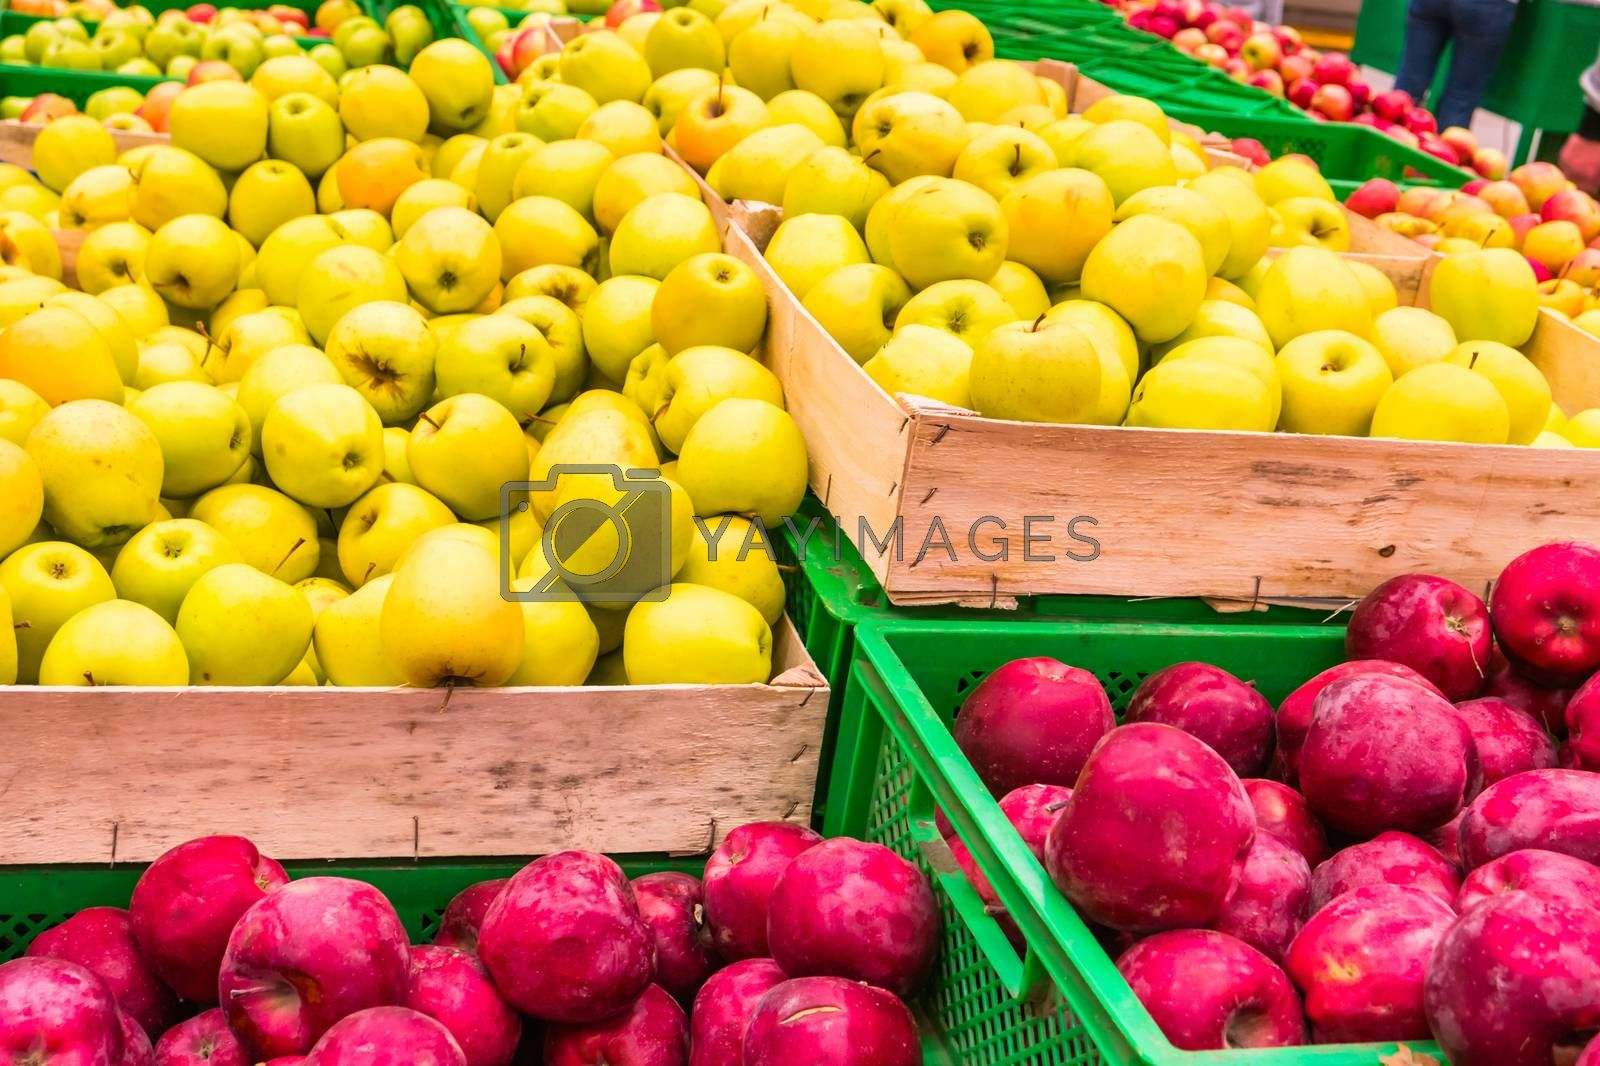 Red and yellow fresh apples in a wooden crates at farmers market